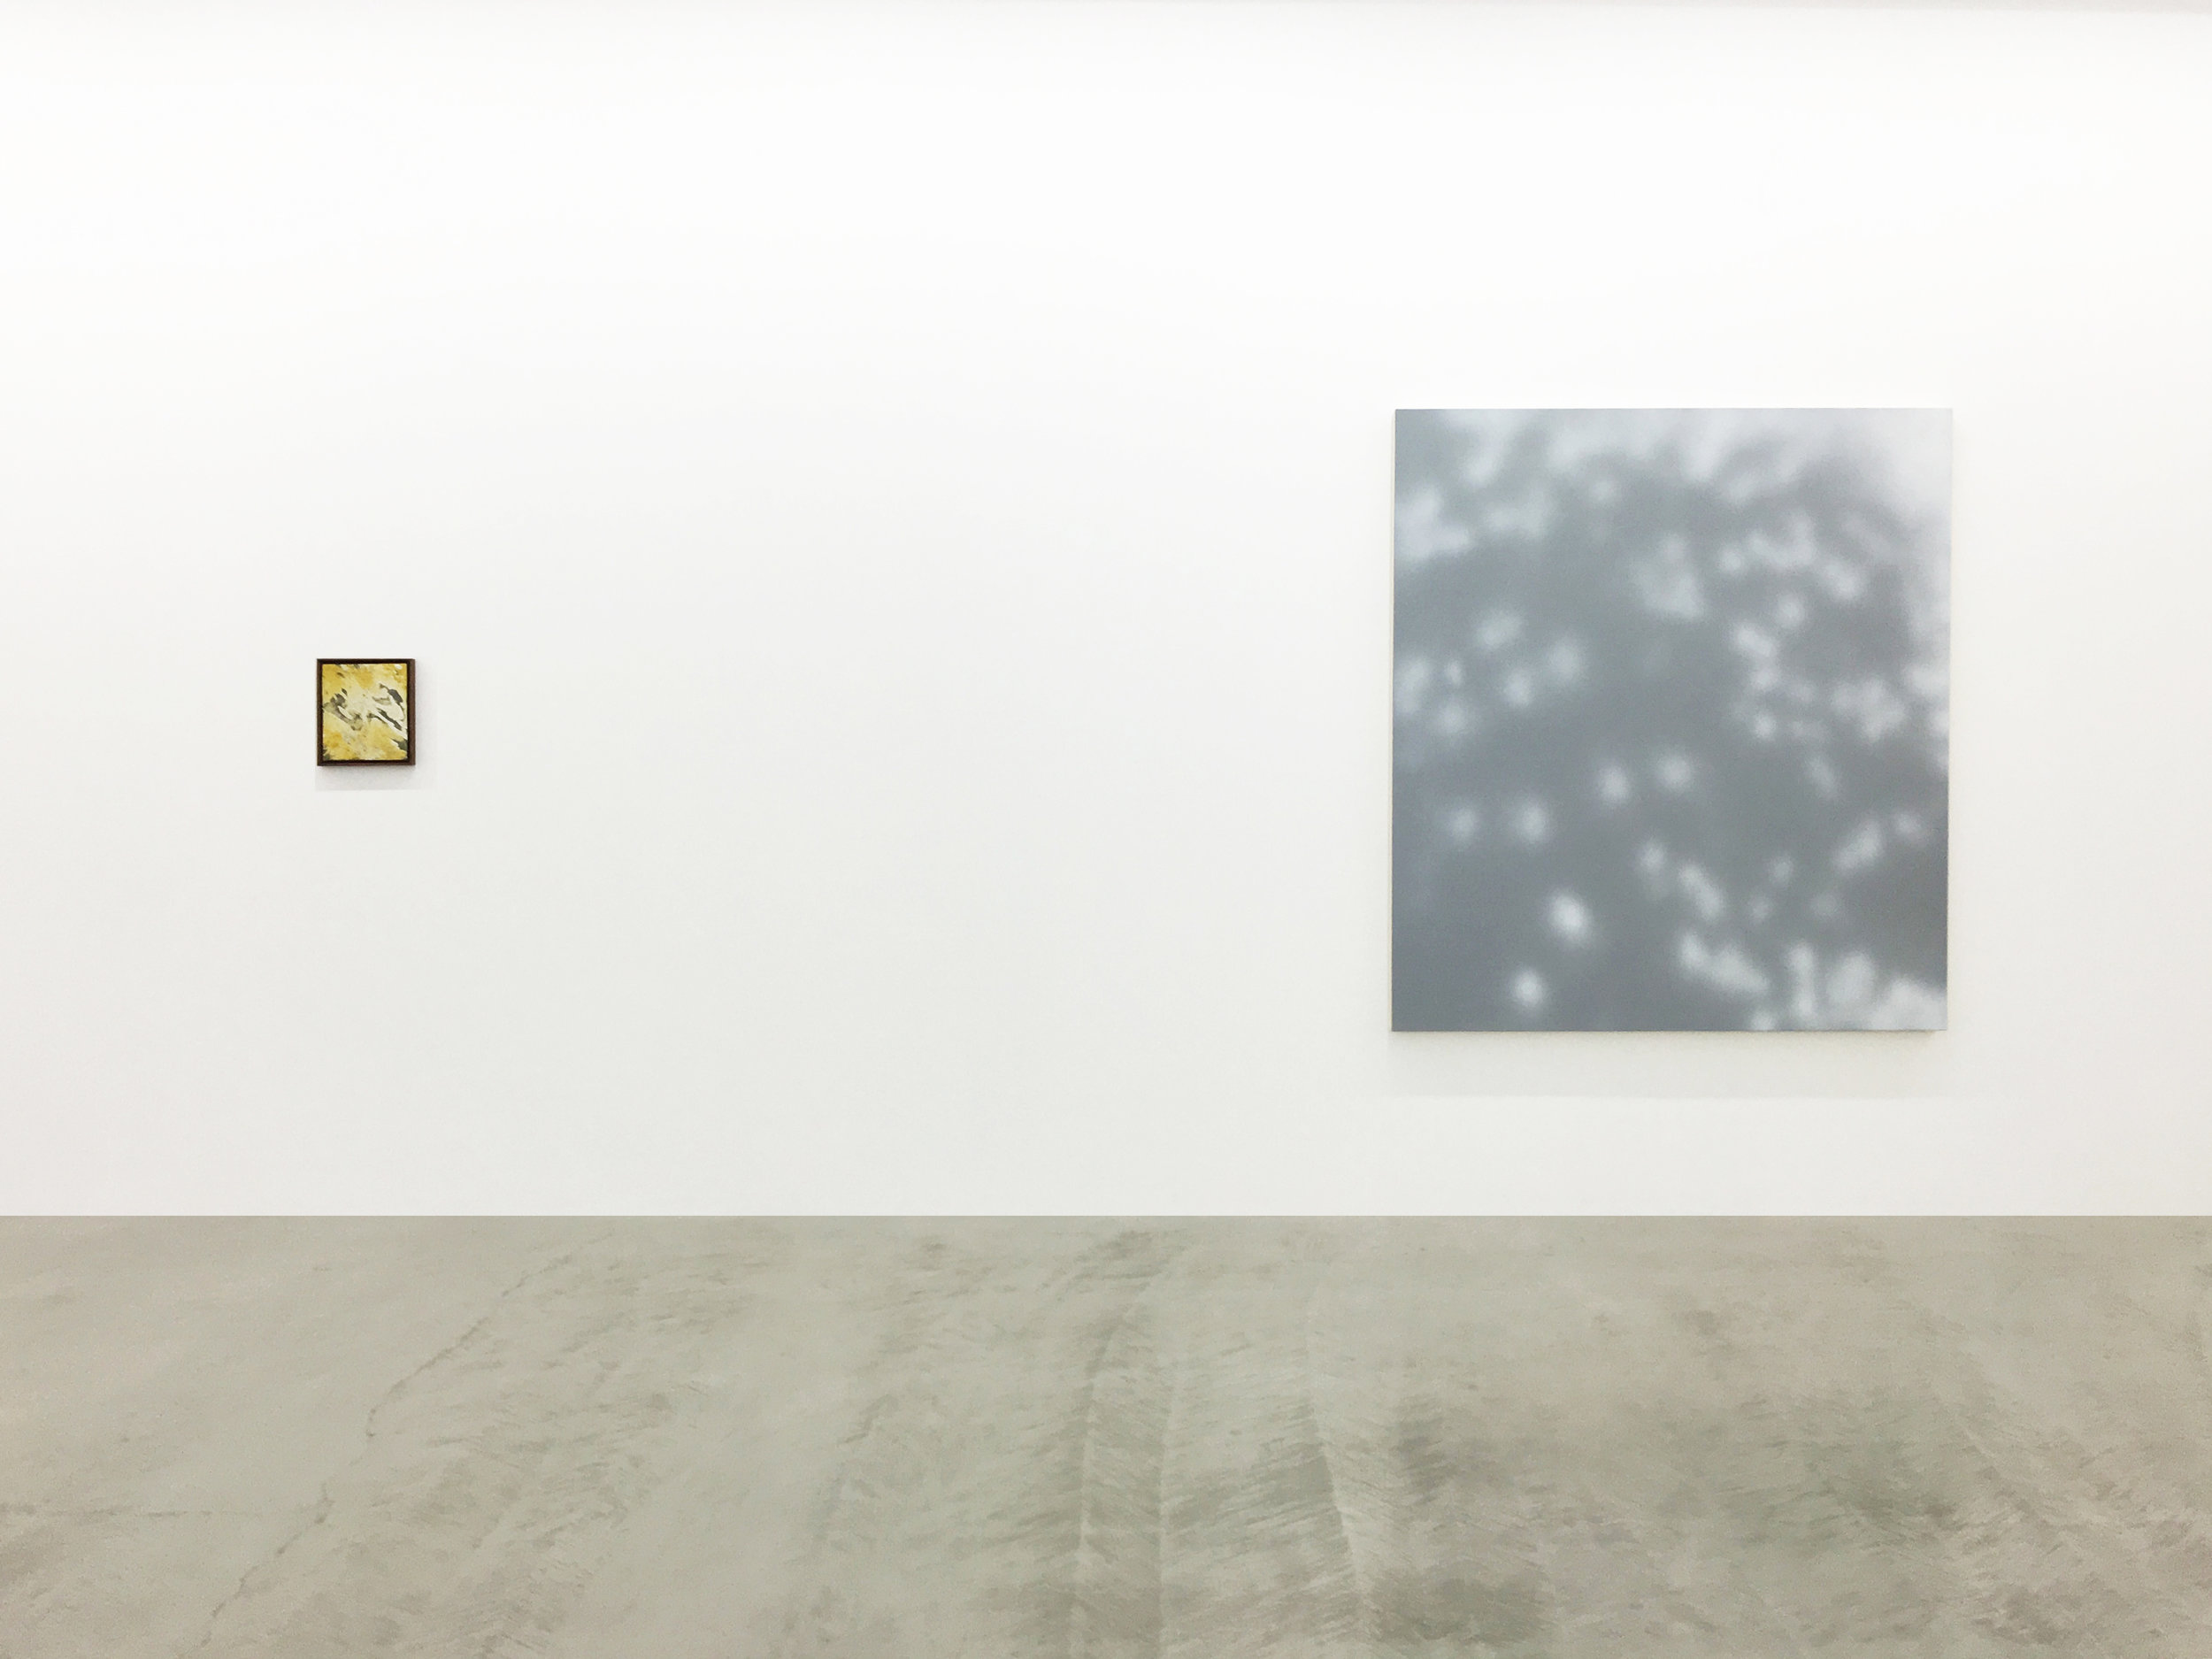 Installation view of James Case Leal paintings depicting plant shadows